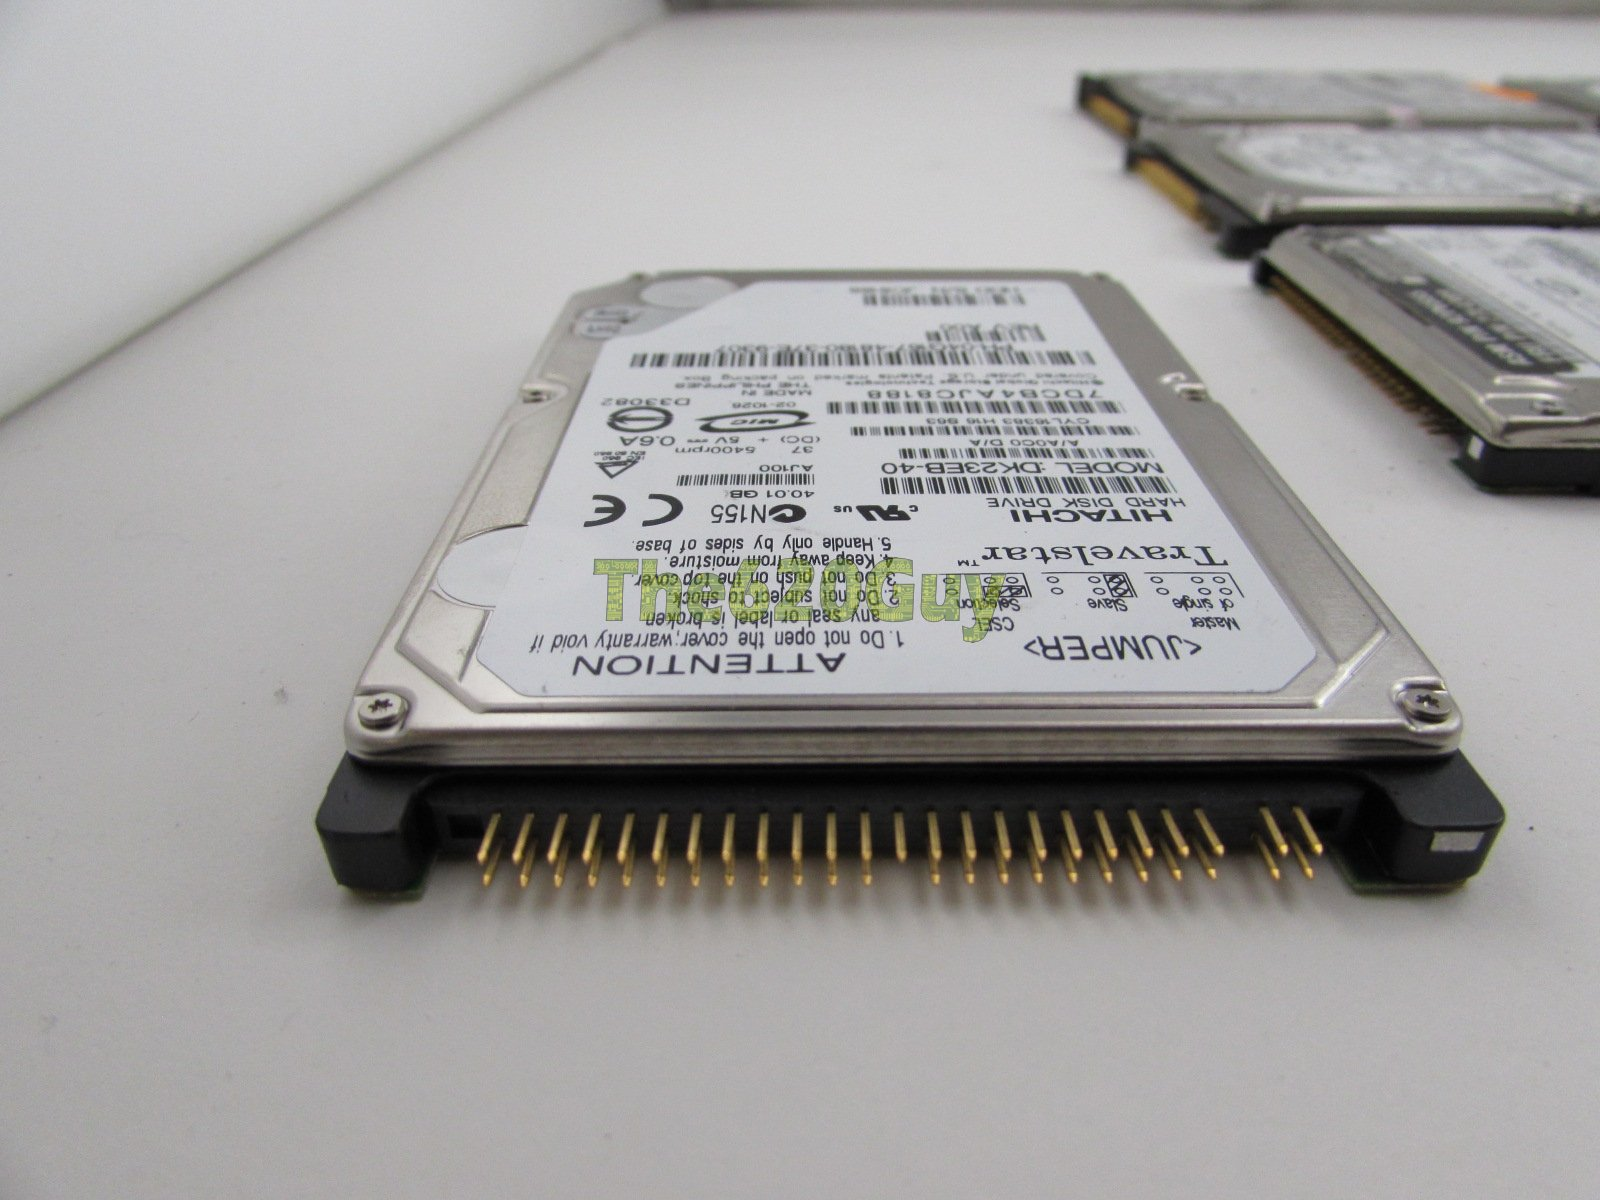 Lot of 9 Mix 40GB 5400 RPM 2MB 2.5 inch IDE ATA Laptop ...